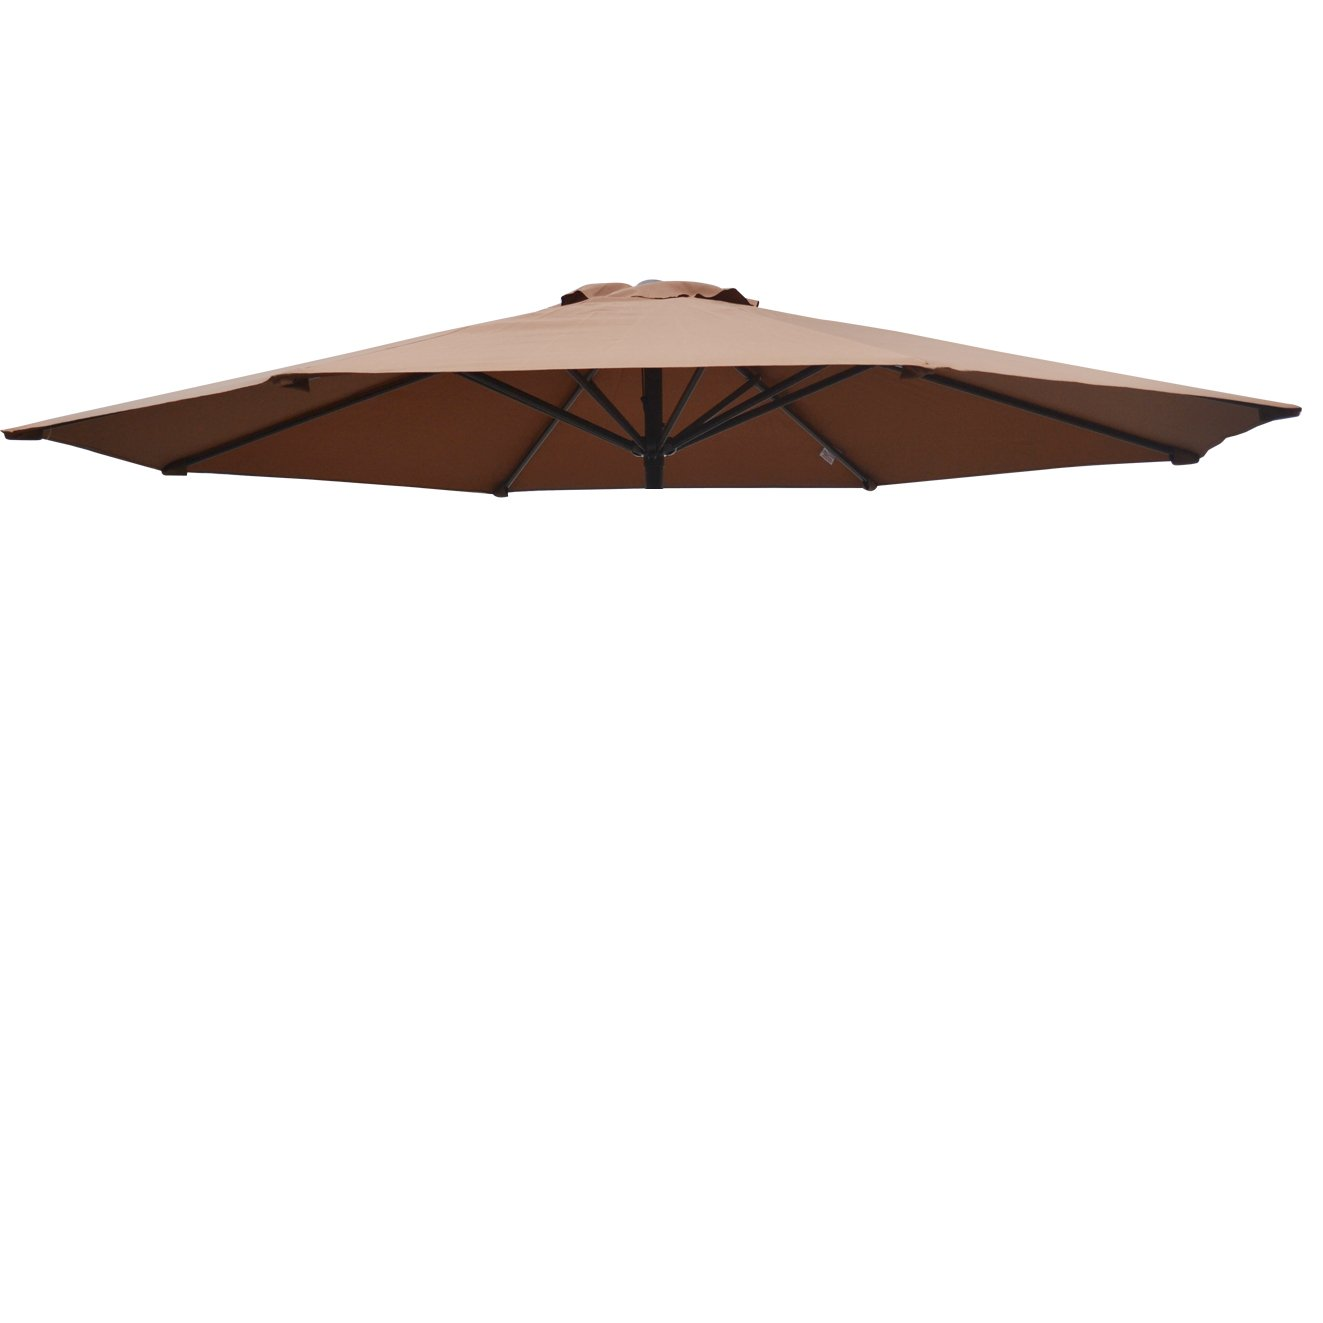 Umbrella Cover Canopy 9ft 8 Rib Patio Replacement Top Outdoor-Brown sunny outdoor inc AUC-08-BRW